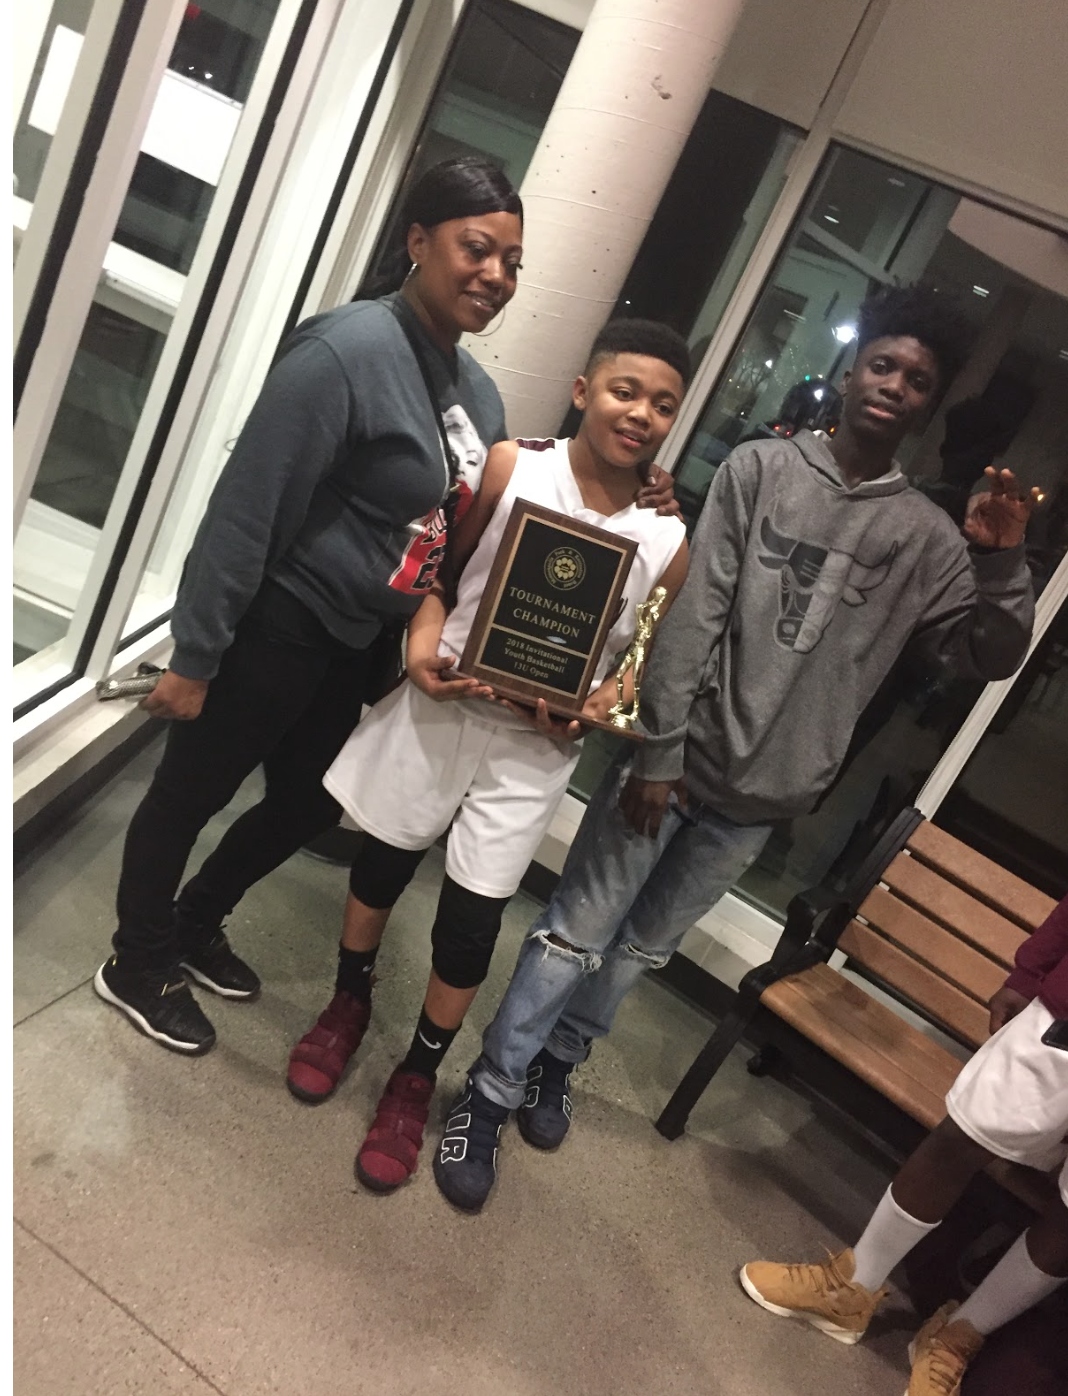 This me and my brother, Andre Frazier, and mom, Ashley Burns, at my little brother's game after he won a championship on May 1. I love my family, and we were so happy after my brother's win. He looks up to me, so him seeing me playing sports and stuff is what make him do the same. He sees me not being in the streets or hanging with the wrong crowd, and he does the same thing. My mom motivates both of us to the fullest in every sport that we play. She is at every one of our games; she makes sure that we eat healthy food, and she makes sure we stay in shape. She also comes to our practices. She makes sure our grades are ok. She tells us that if our grades aren't where she wants them to be that we don't be playing. She'll take basketball away from us if our grades aren't good or if we're doing something else we're not supposed to.